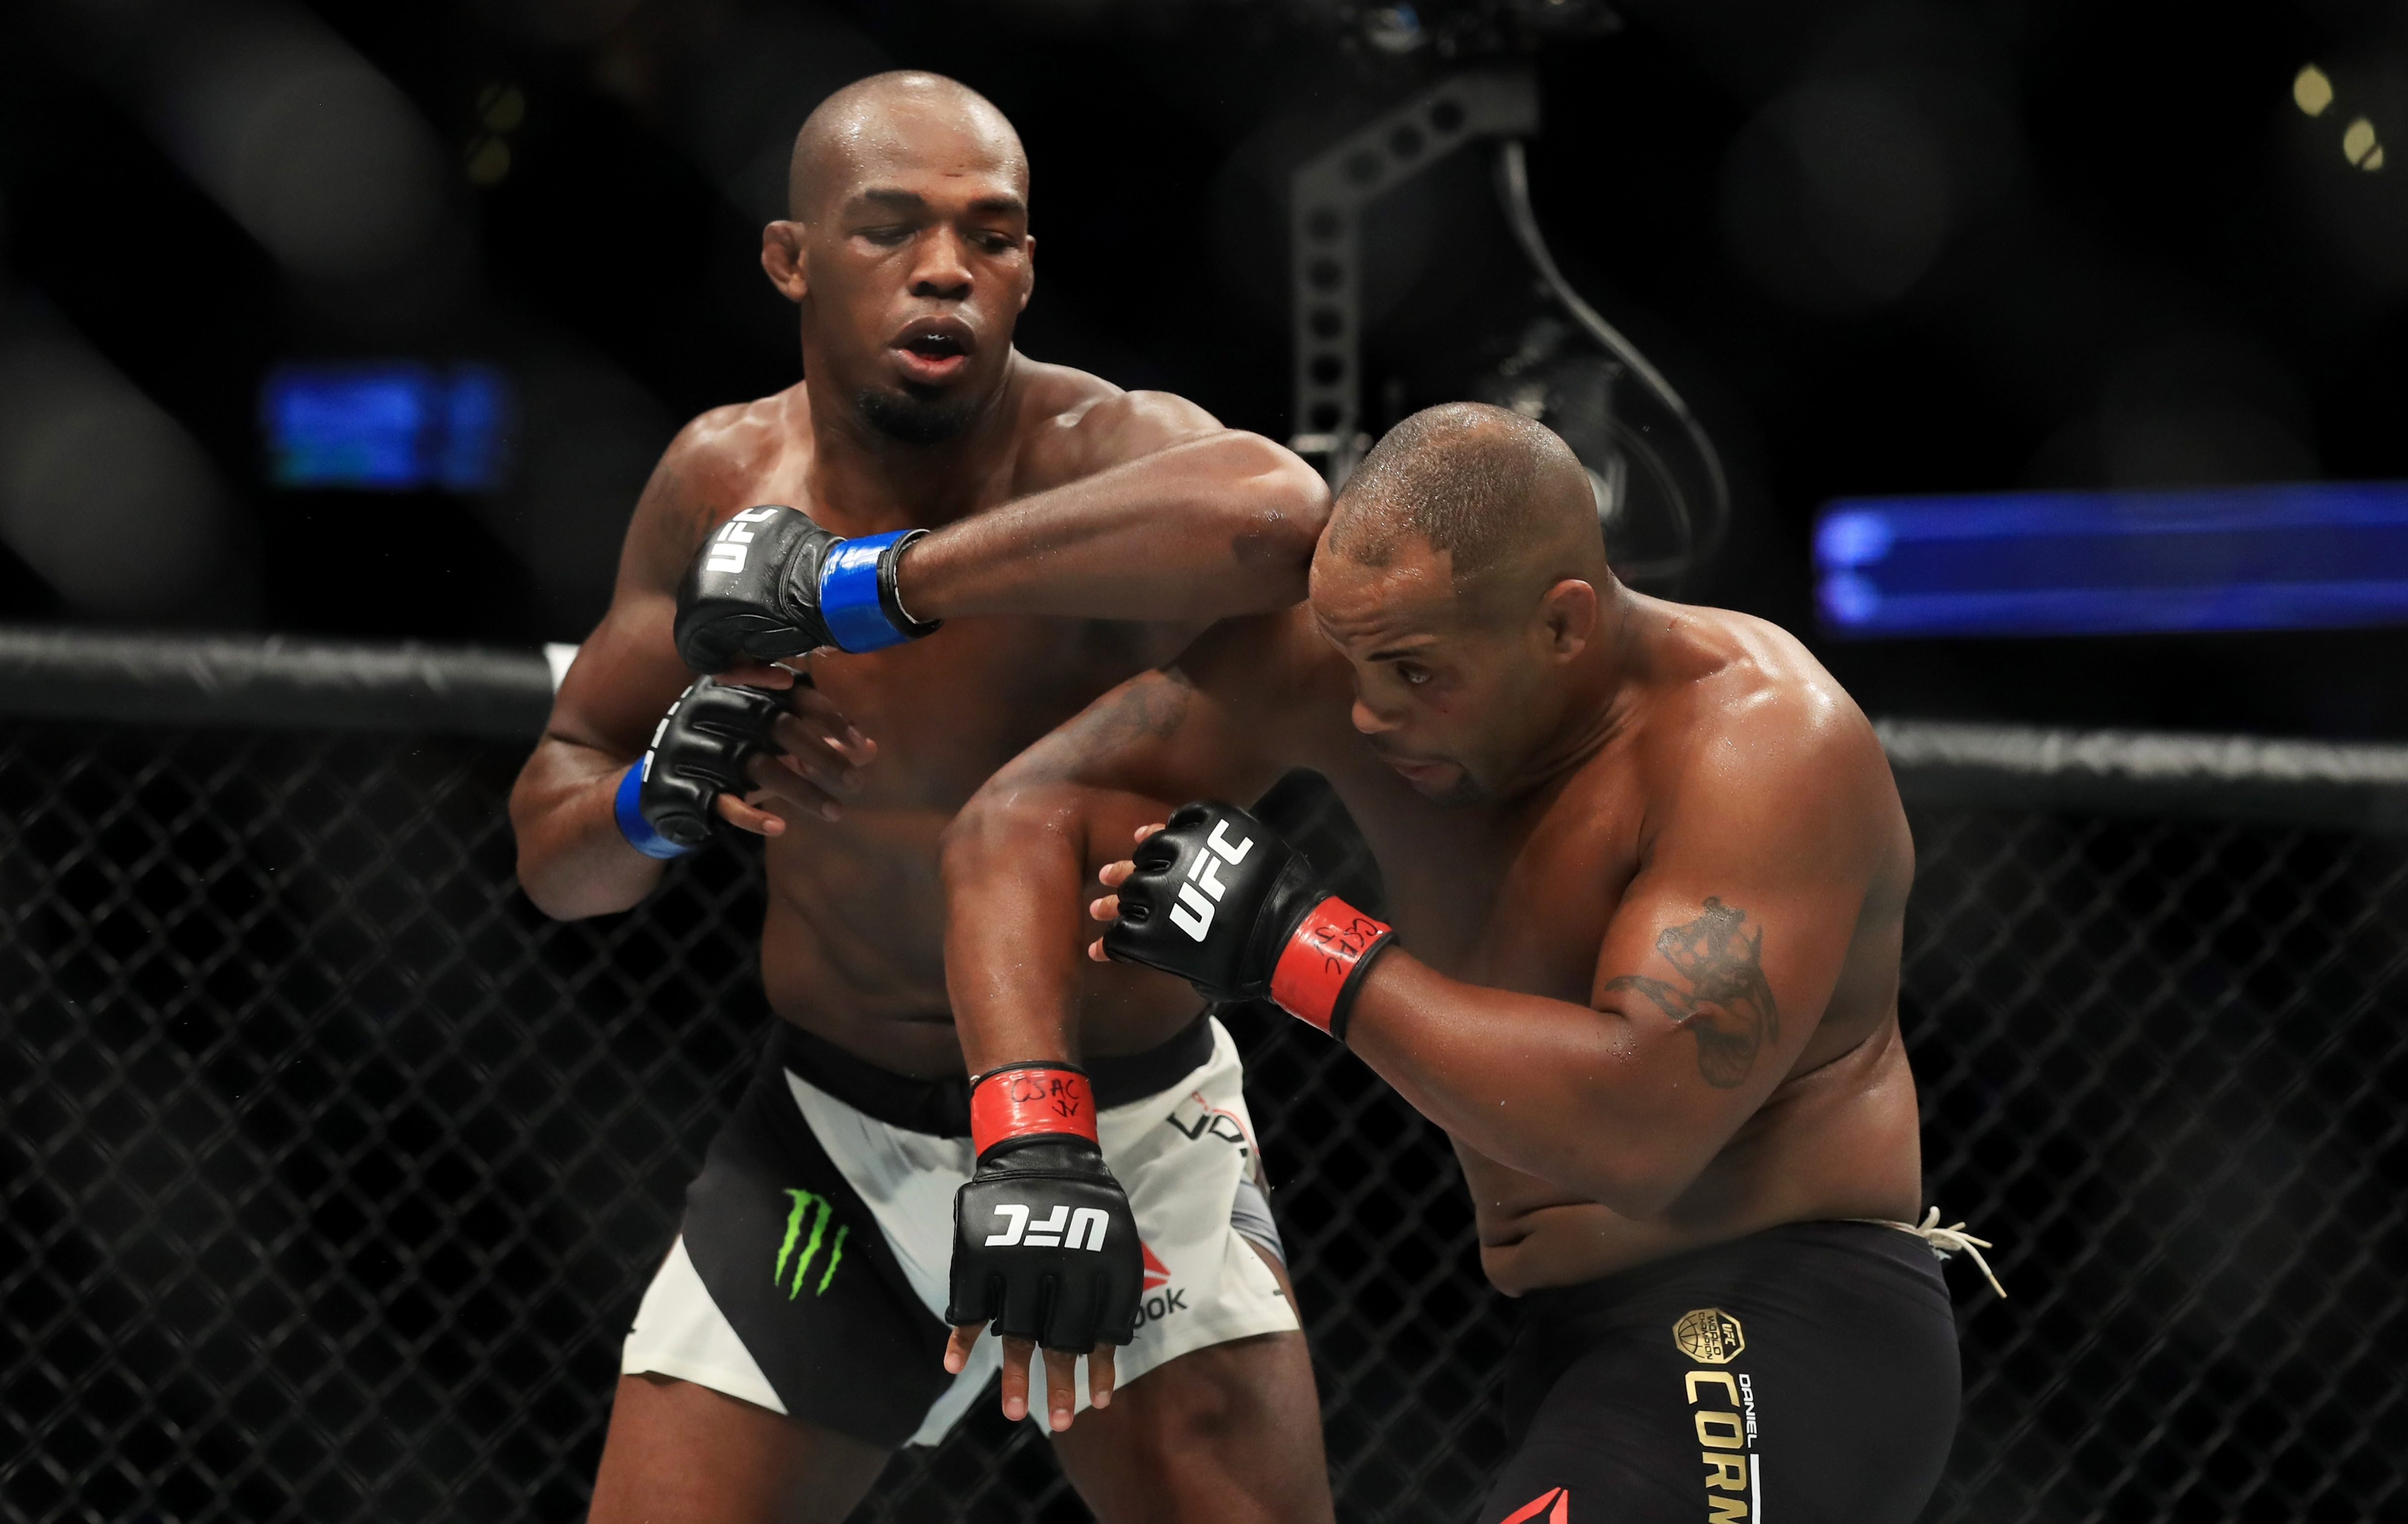 Jones and Cormier have a heated rivalry with the pair fighting twice, both contested at light-heavyweight